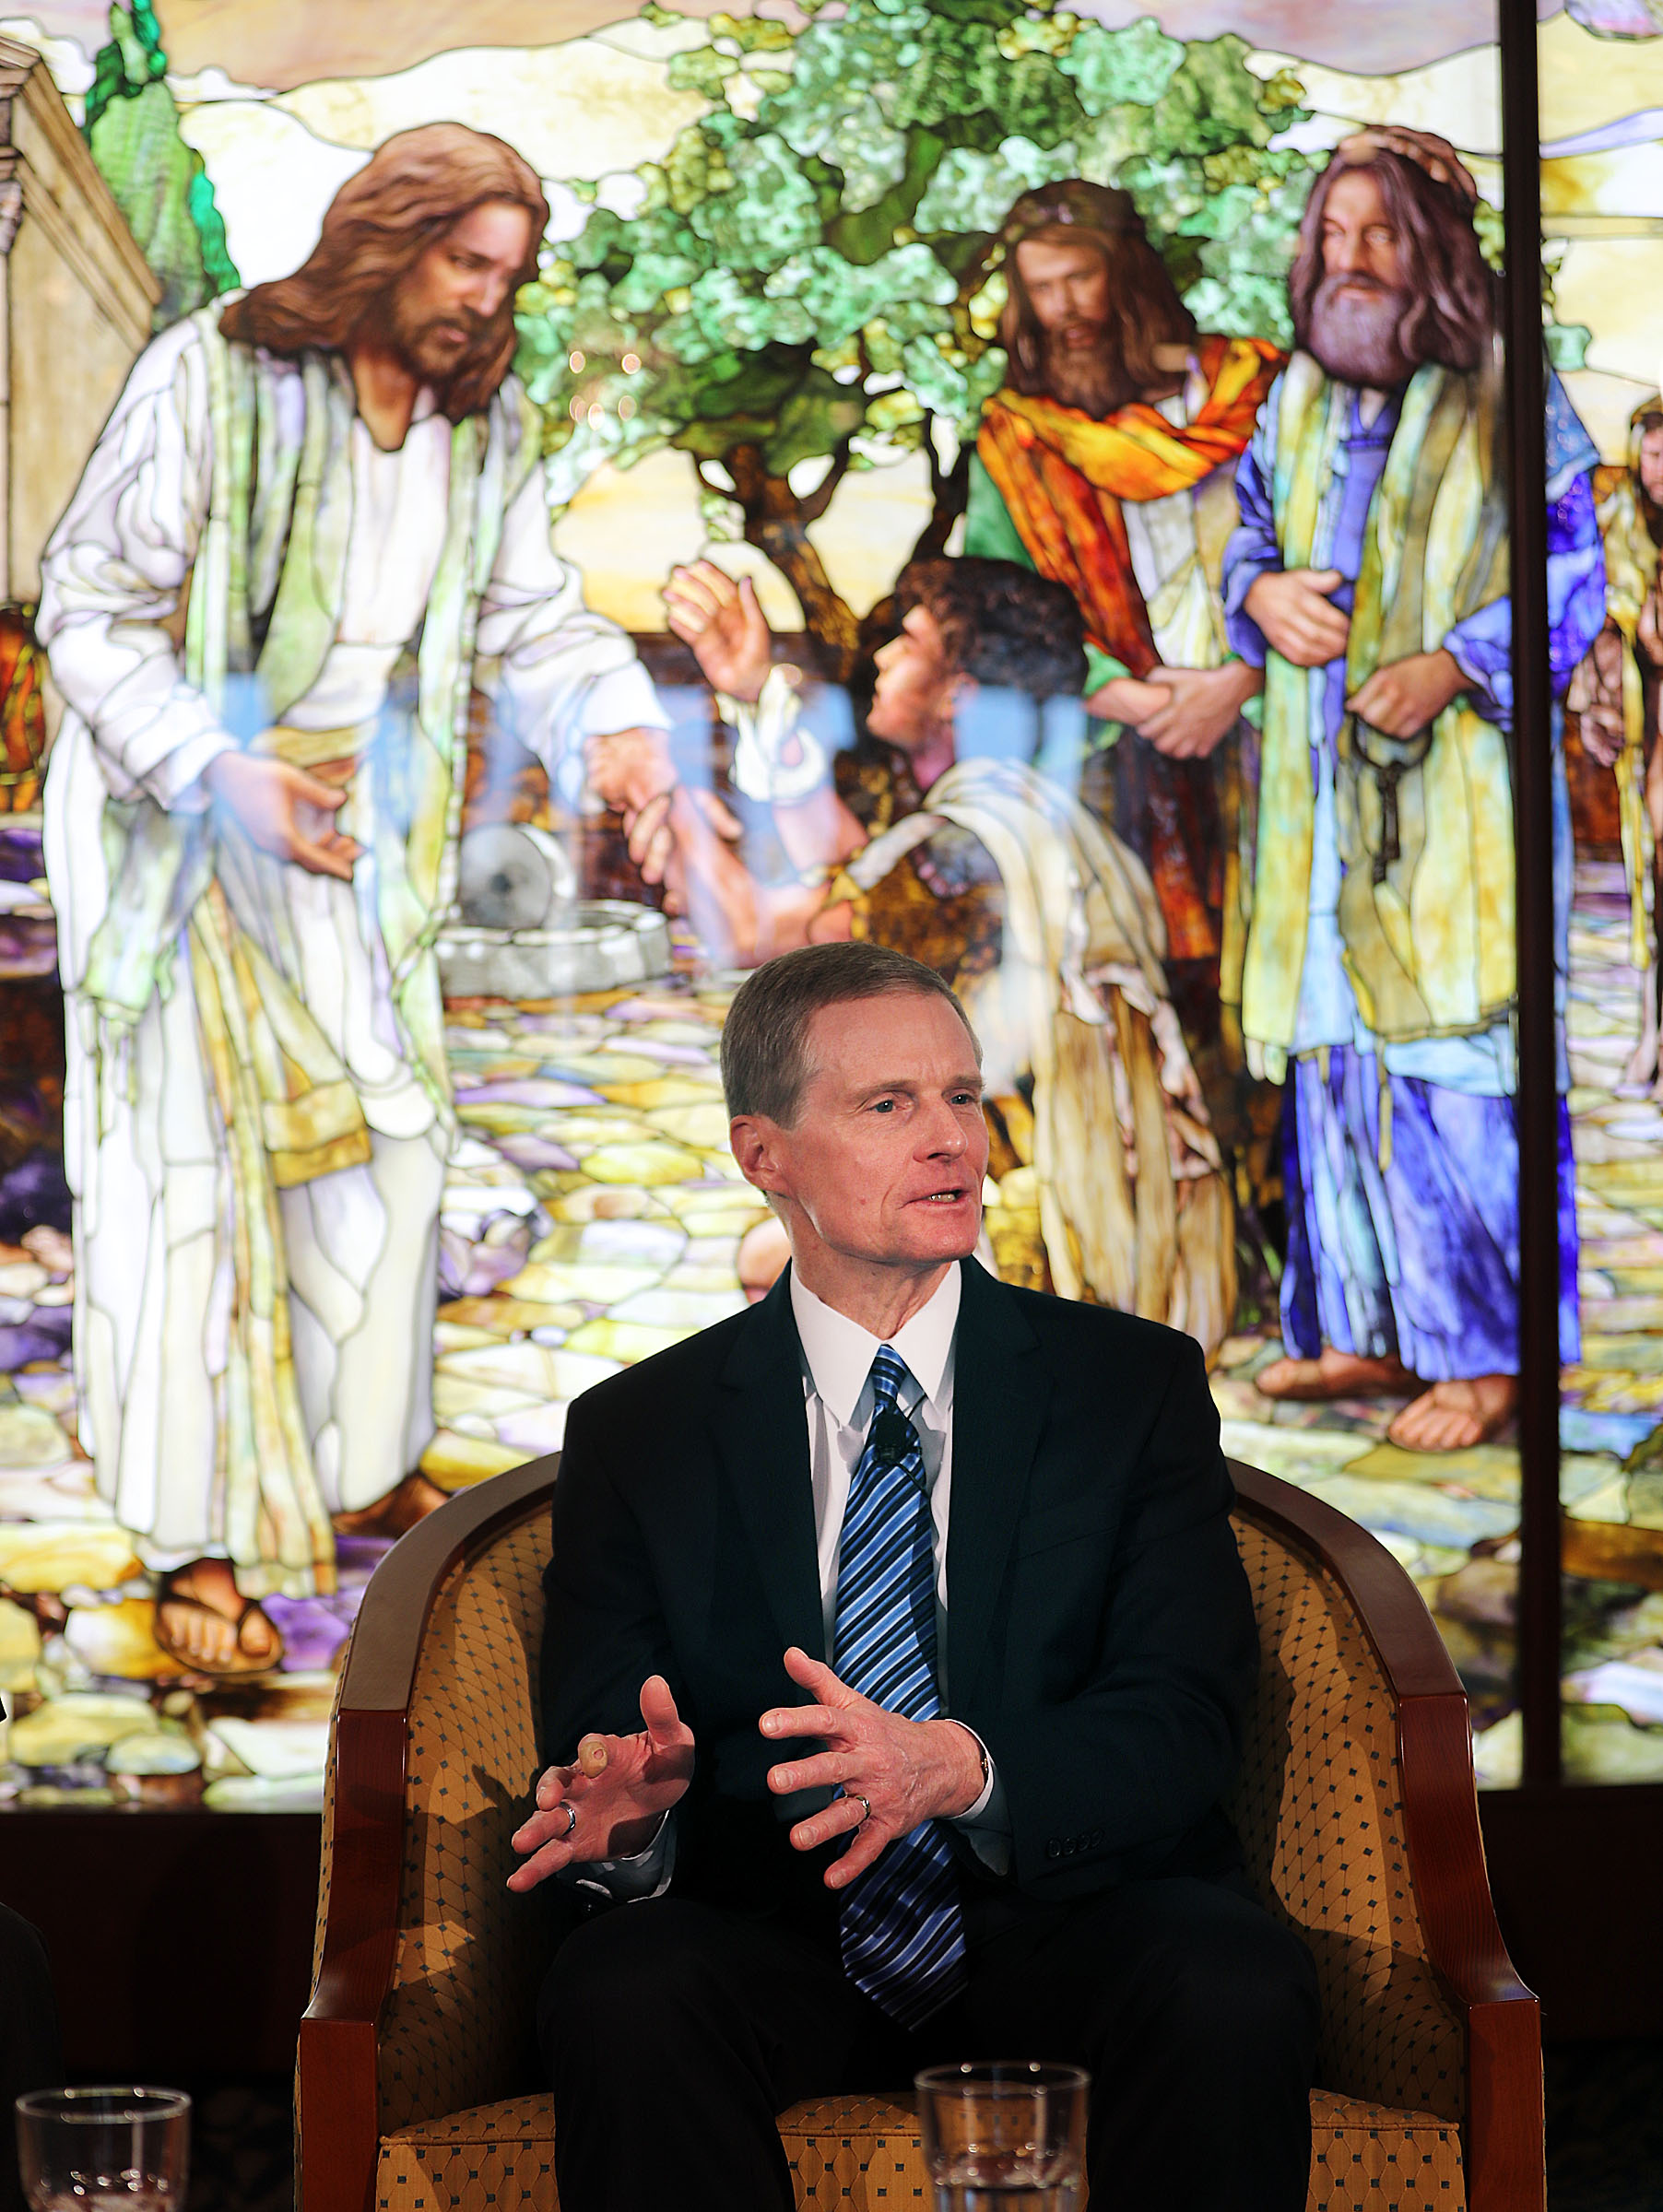 Elder David A. Bednar of the Quorum of the Twelve Apostles answers a question during a press conference in the Rome Temple Visitors' Center of The Church of Jesus Christ of Latter-day Saints on Monday, Jan. 14, 2019.